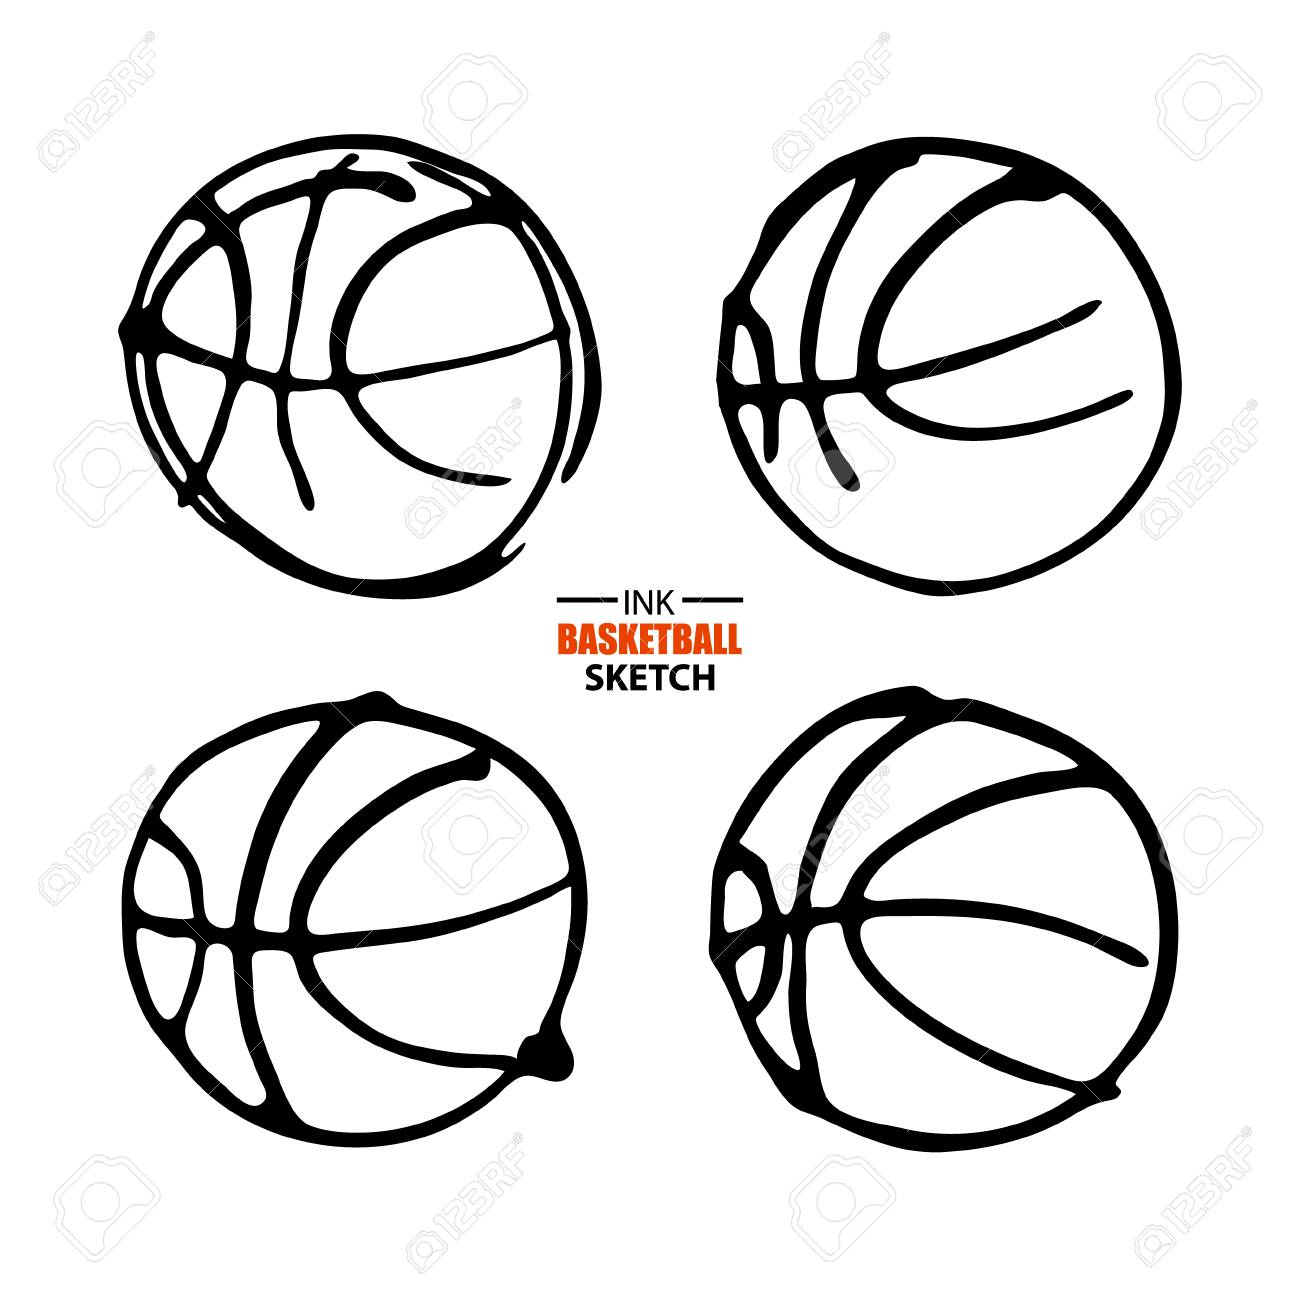 Vector illustration for basketball logo set sketch hand drawing vector illustration for basketball logo set sketch hand drawing symbol ball biocorpaavc Choice Image